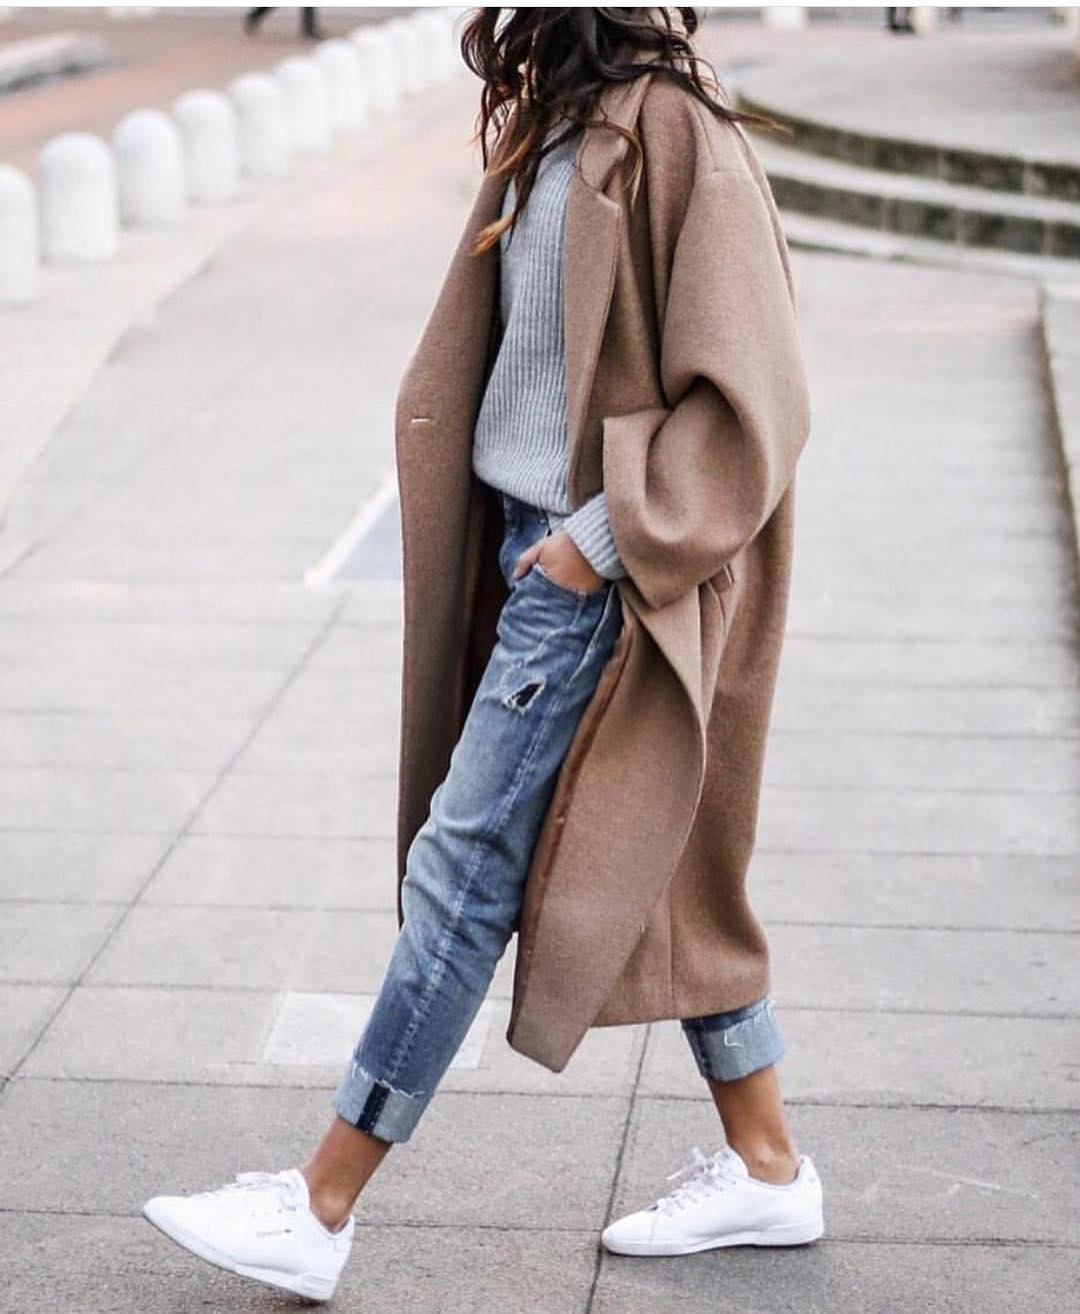 Camel Oversized Coat And Grey Sweater With Cuffed Jeans And White Kicks For Fall 2019